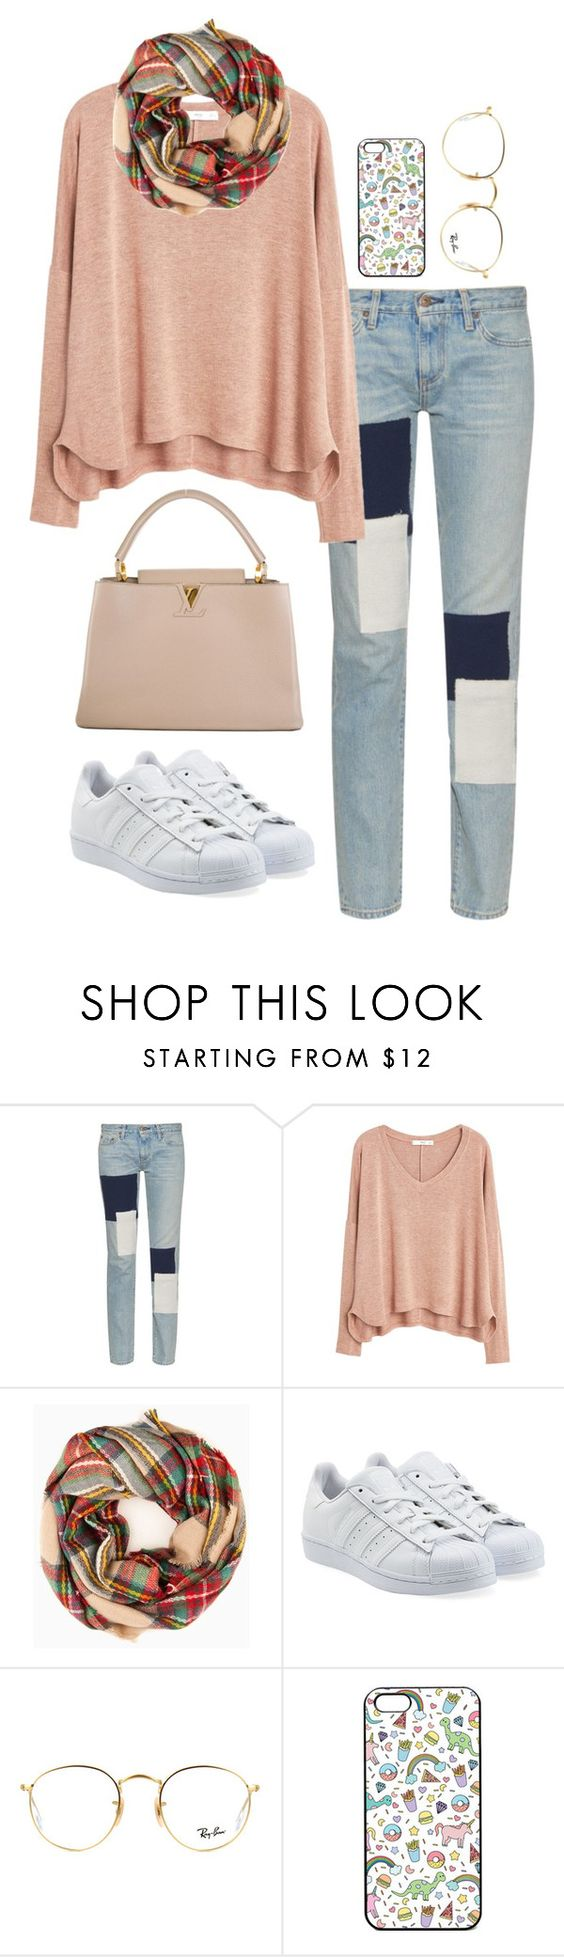 """""""Sin título #220"""" by famousstyles-dp ❤ liked on Polyvore featuring Simon Miller, MANGO, adidas Originals, Ray-Ban and Louis Vuitton"""